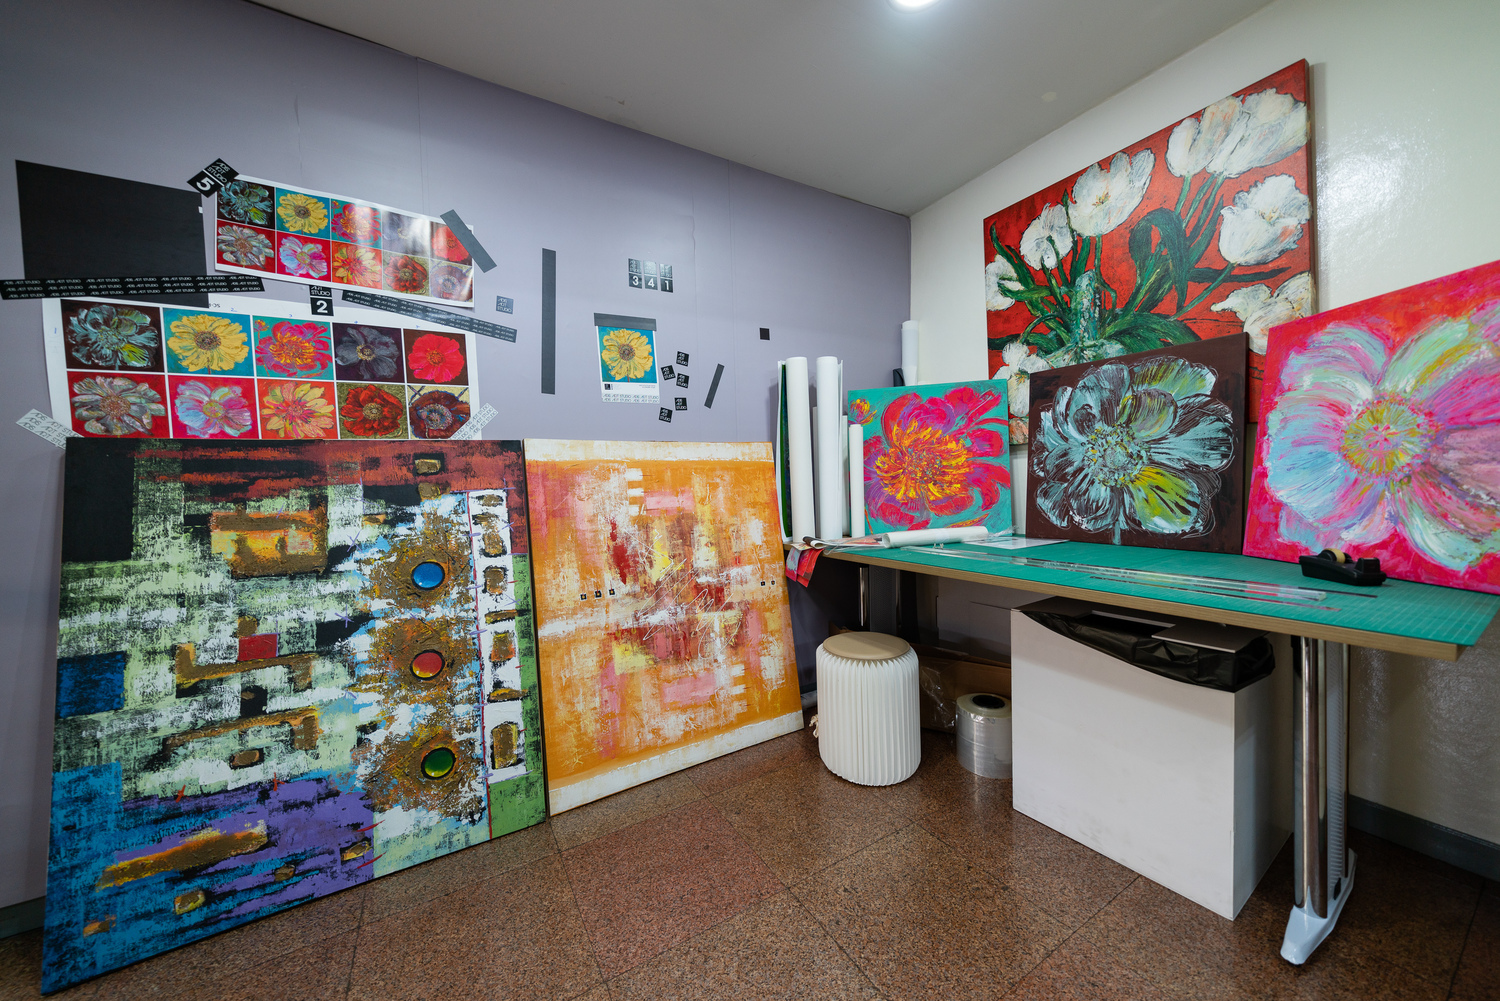 Works by artist at ADIS ART STUDUO